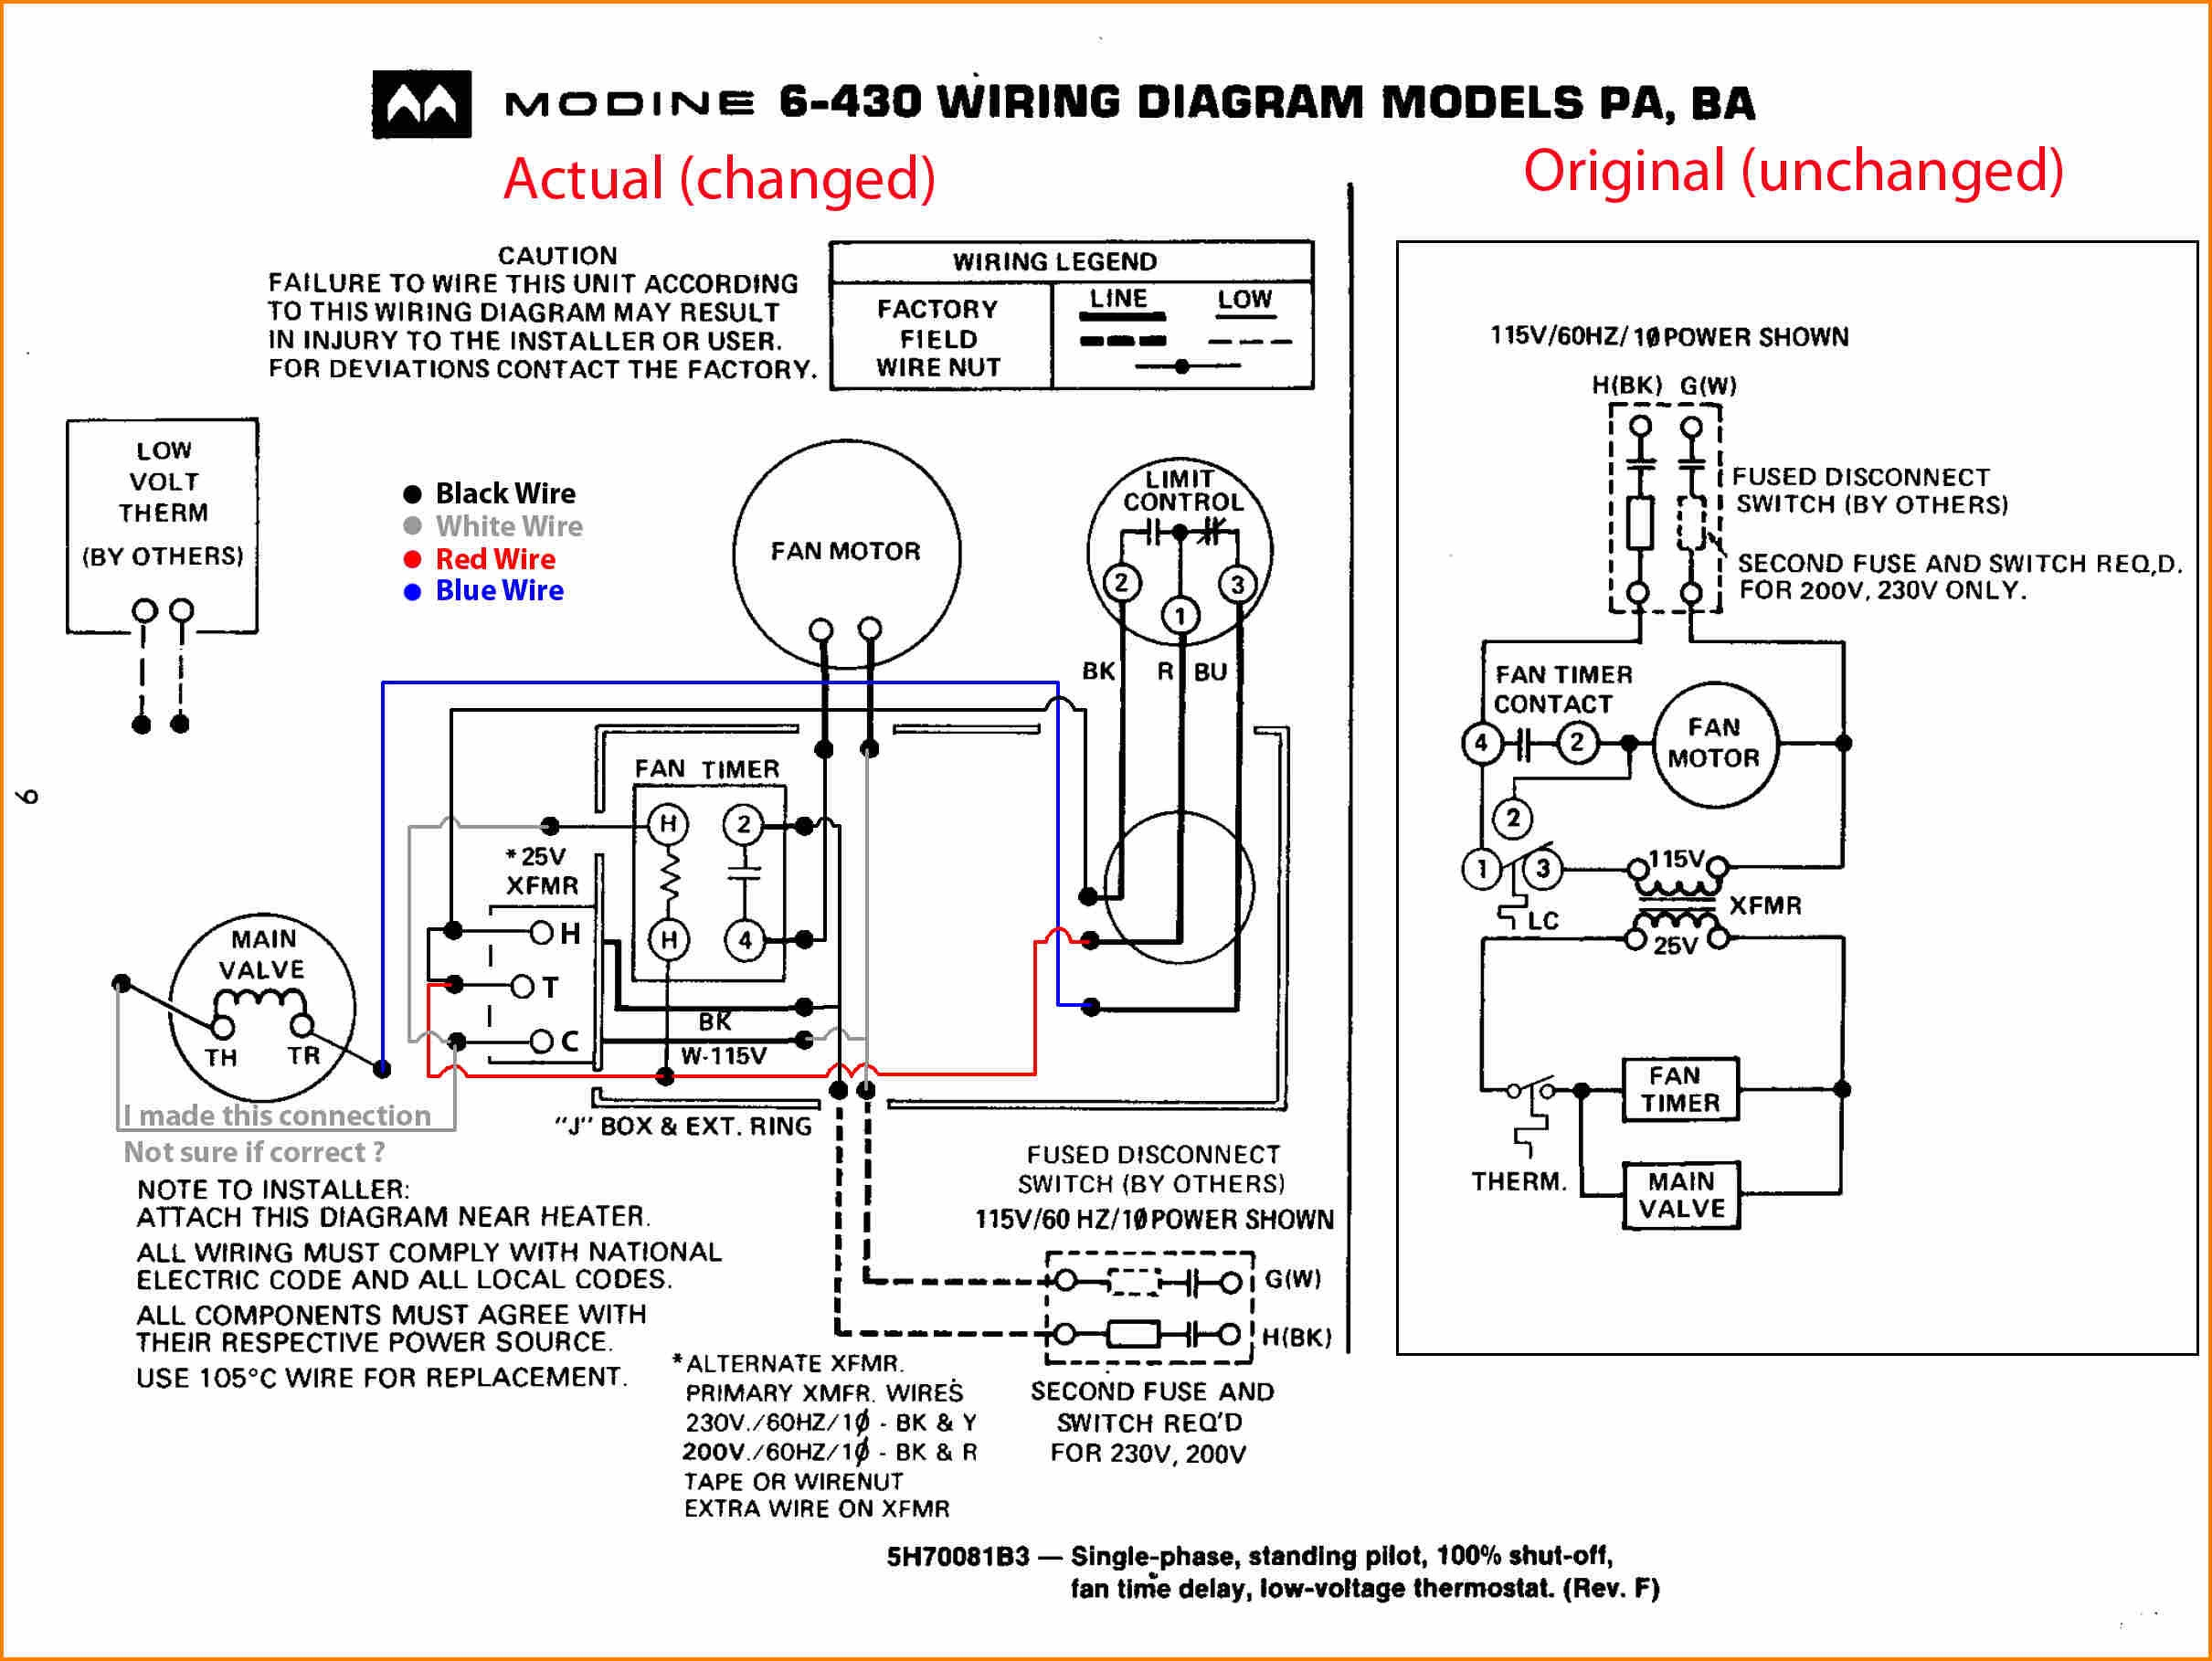 DIAGRAM] Whirlpool 3ce2910xsw1 Dryer Wiring Diagram FULL ... on ge wiring schematic, ge electric dryer, ge dryer wiring color, ge schematic diagrams, ge dryer replacement parts, ge dryer rotary start switch, ge dryer thermal fuse location, ge range electrical diagram, ge appliance parts diagram, ge dryer problems, kenmore dryer door switch diagram, general electric dryer diagram, ge clothes dryer parts, dryer schematic diagram, ge dryer not heating, ge dishwasher diagram, ge dryer plug wiring, ge appliance wiring diagrams, ge dryer switch wiring, maytag neptune dryer belt routing diagram,